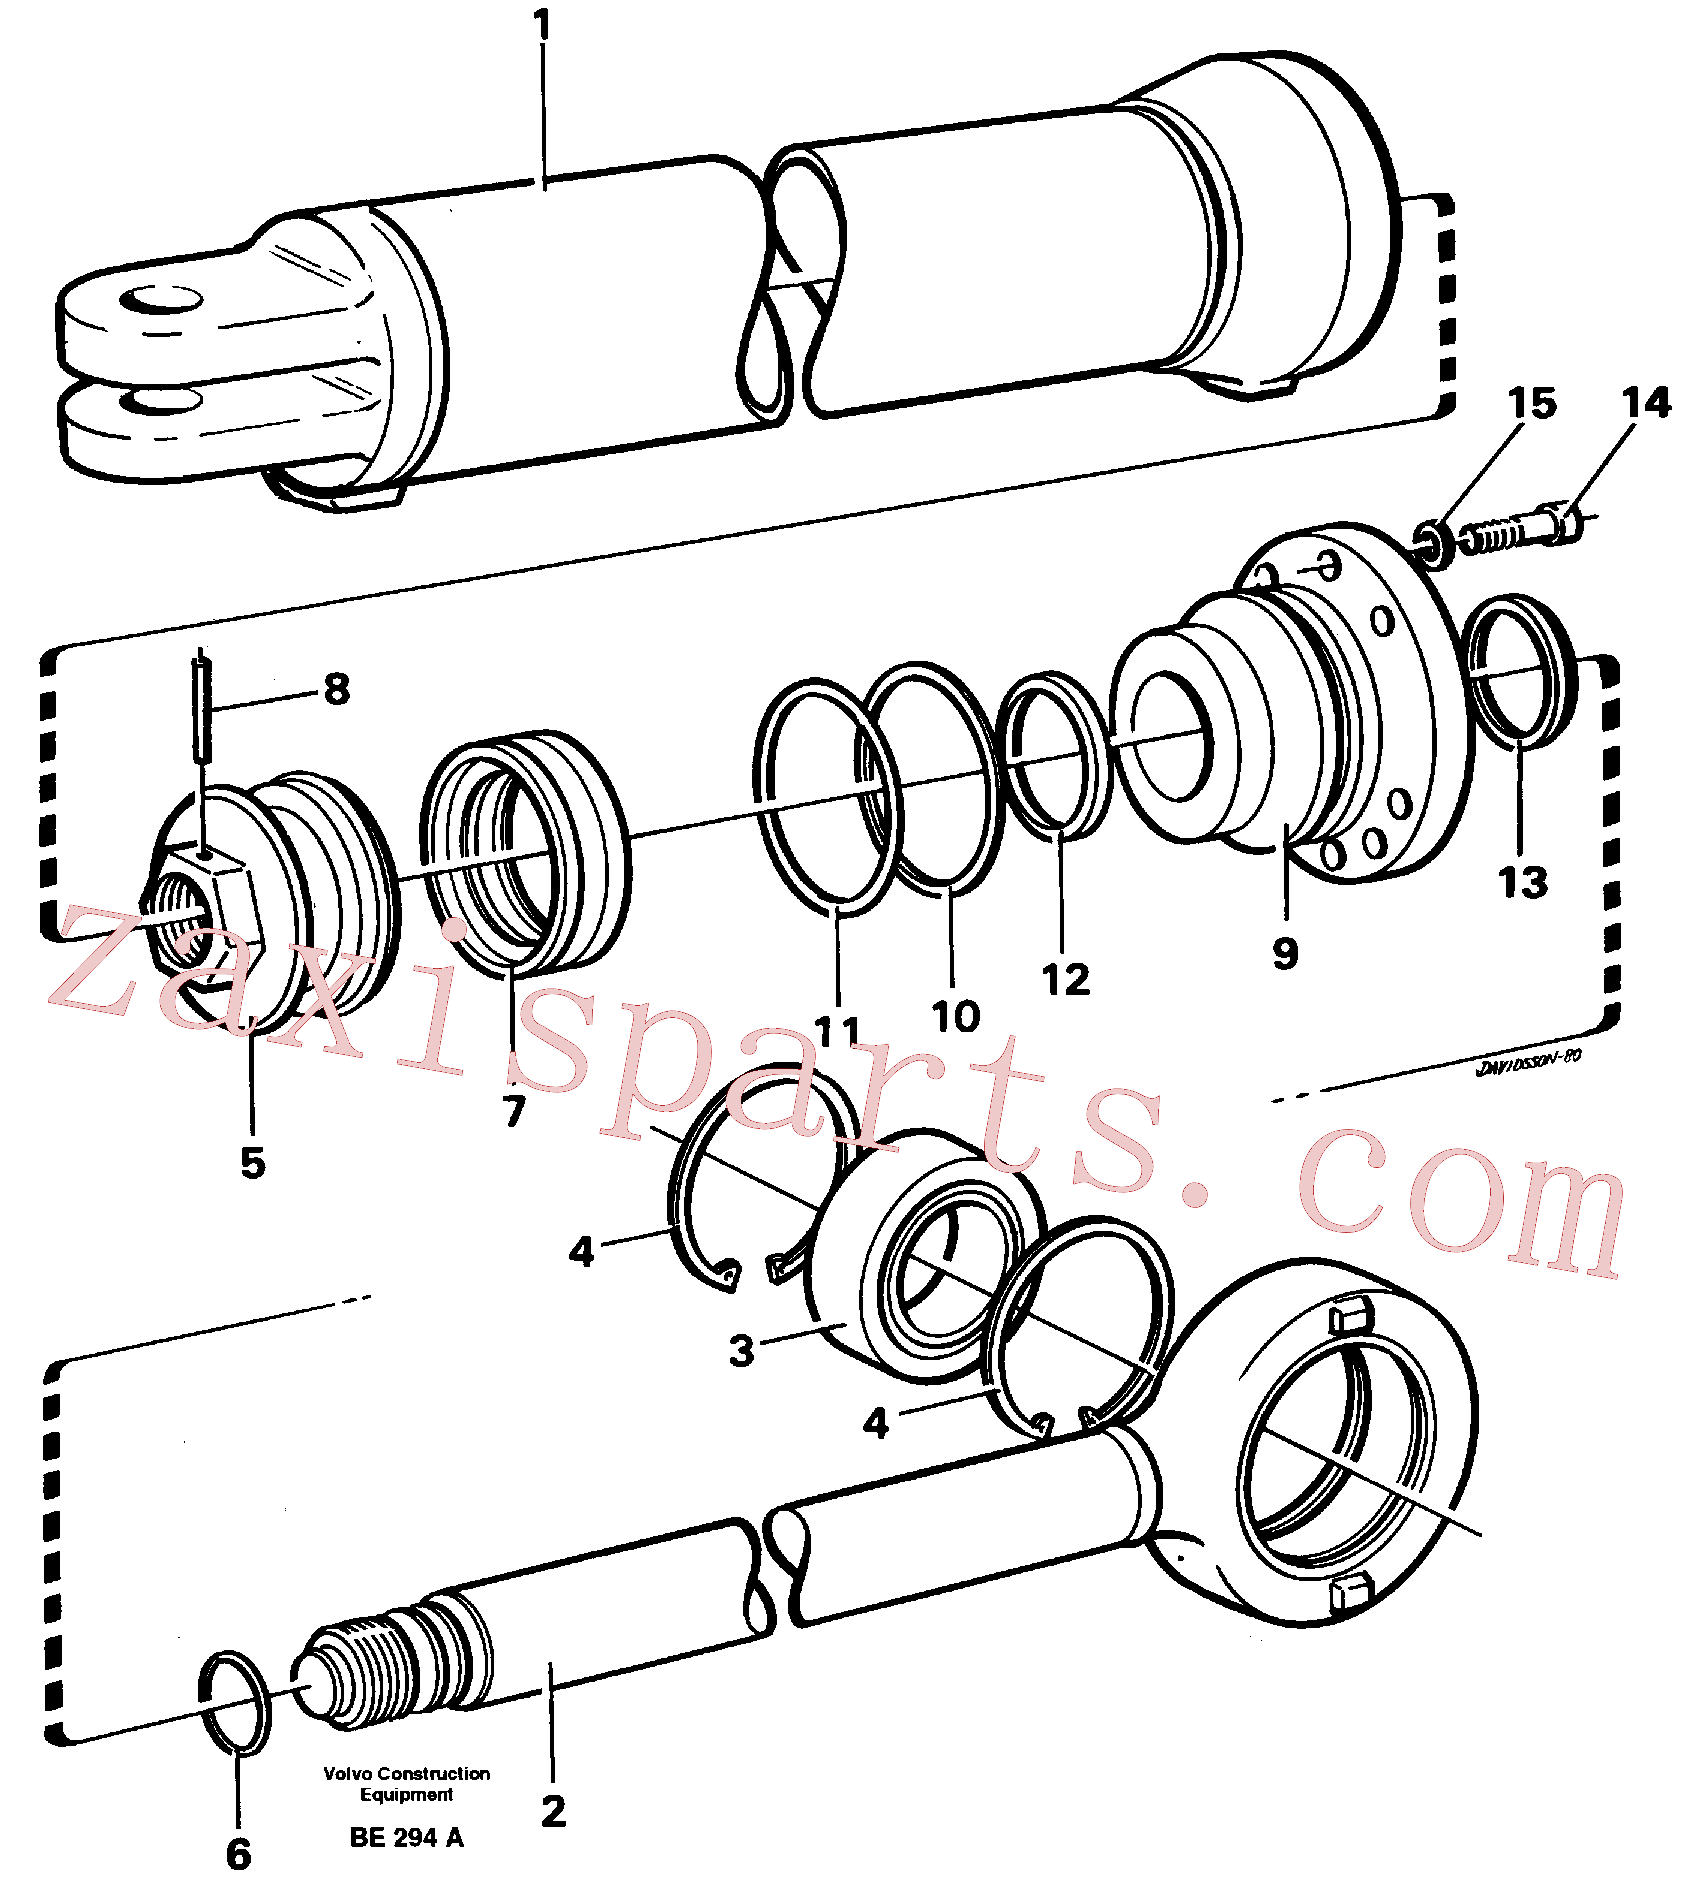 VOE13960178 for Volvo Hydraulic cylinder(BE294A assembly)